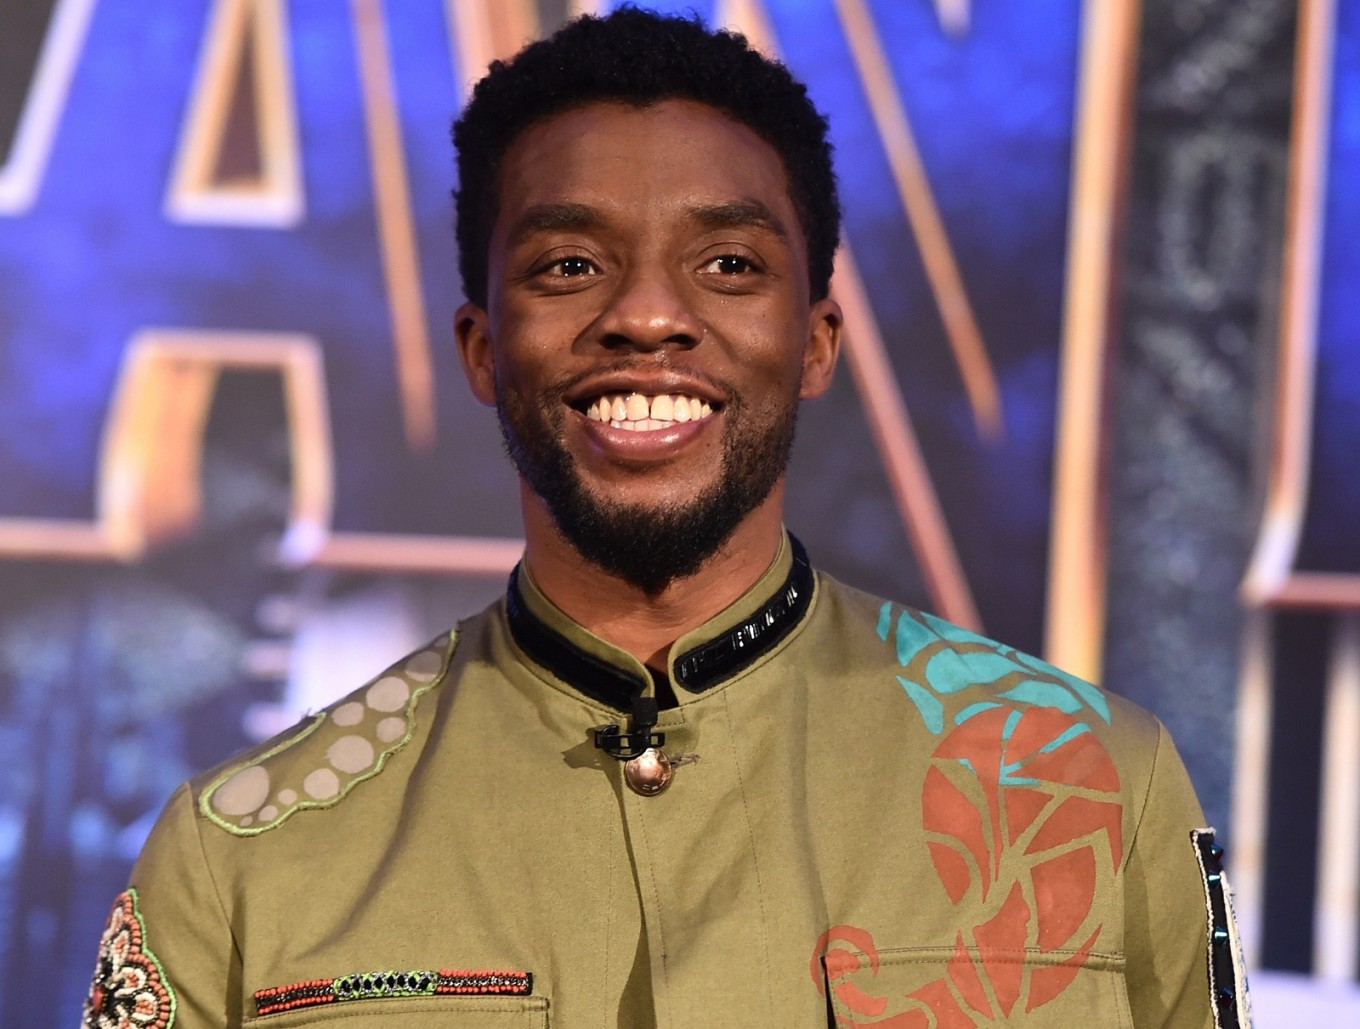 Black Panther Star Boseman Dies After Private Battle With Cancer Entertainment The Jakarta Post